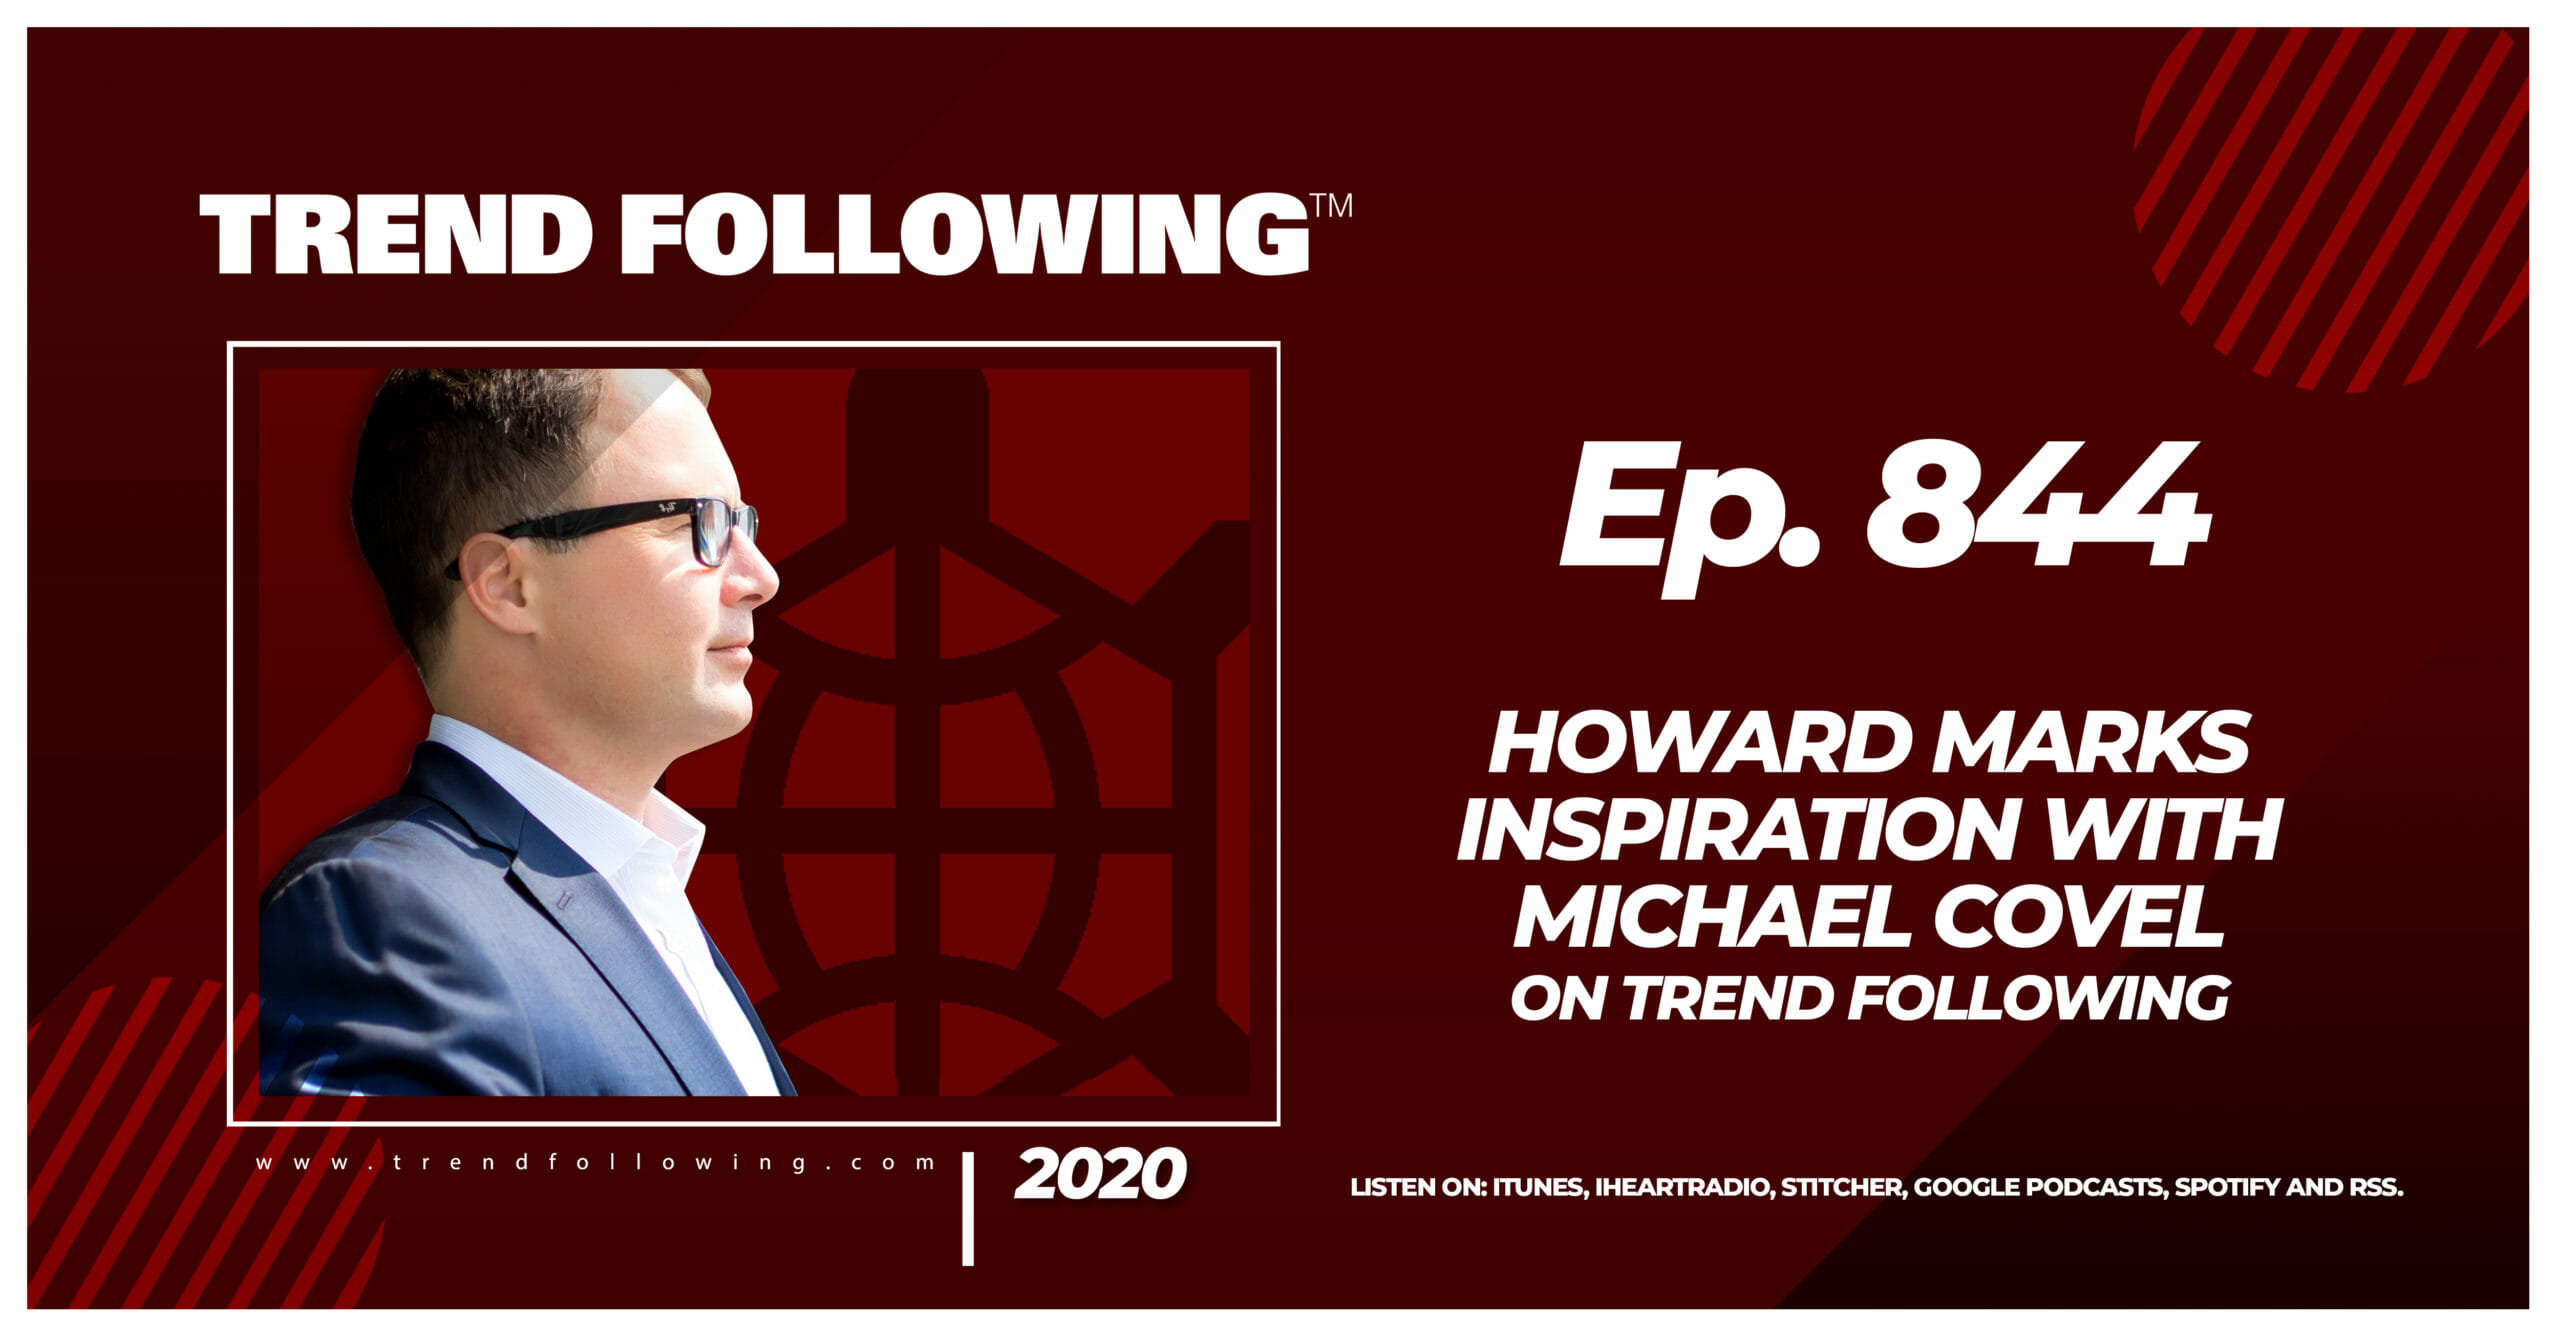 Episode 844 Howard Marks Inspiration with Michael Covel